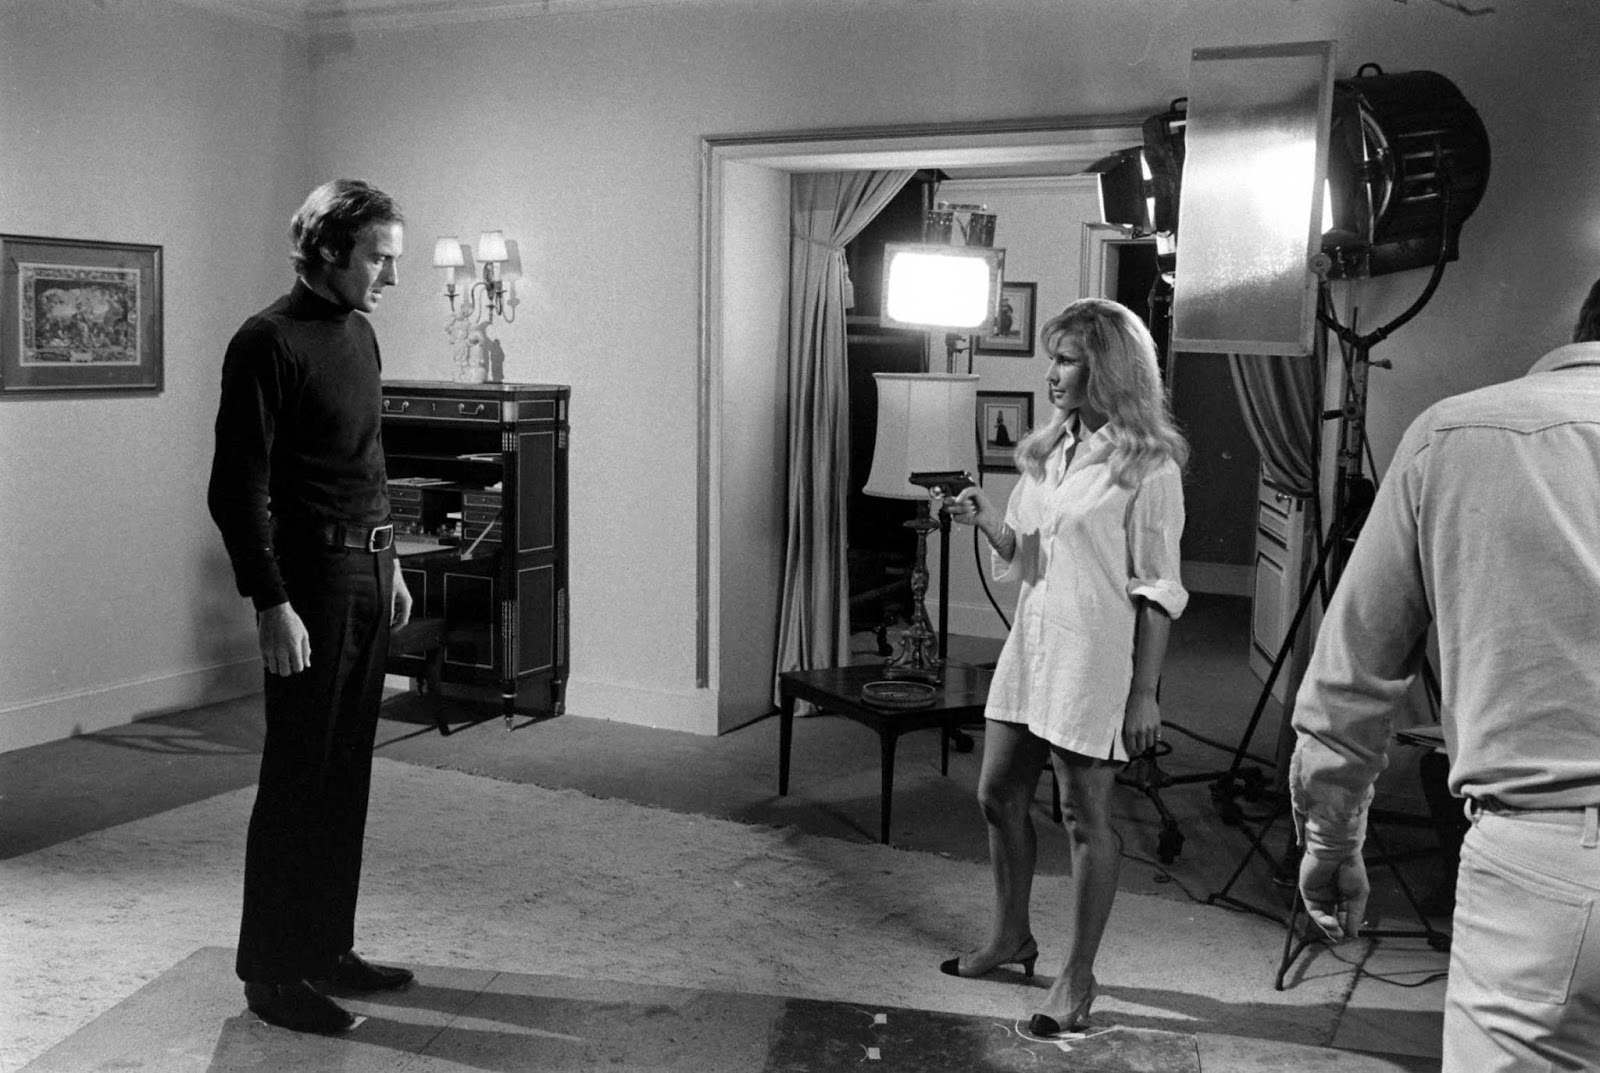 One of the Bond hopefuls after Sean Connery's decision to resign from the role, John Richardson reacts as his screen-test costar pulls out a gun, 1967